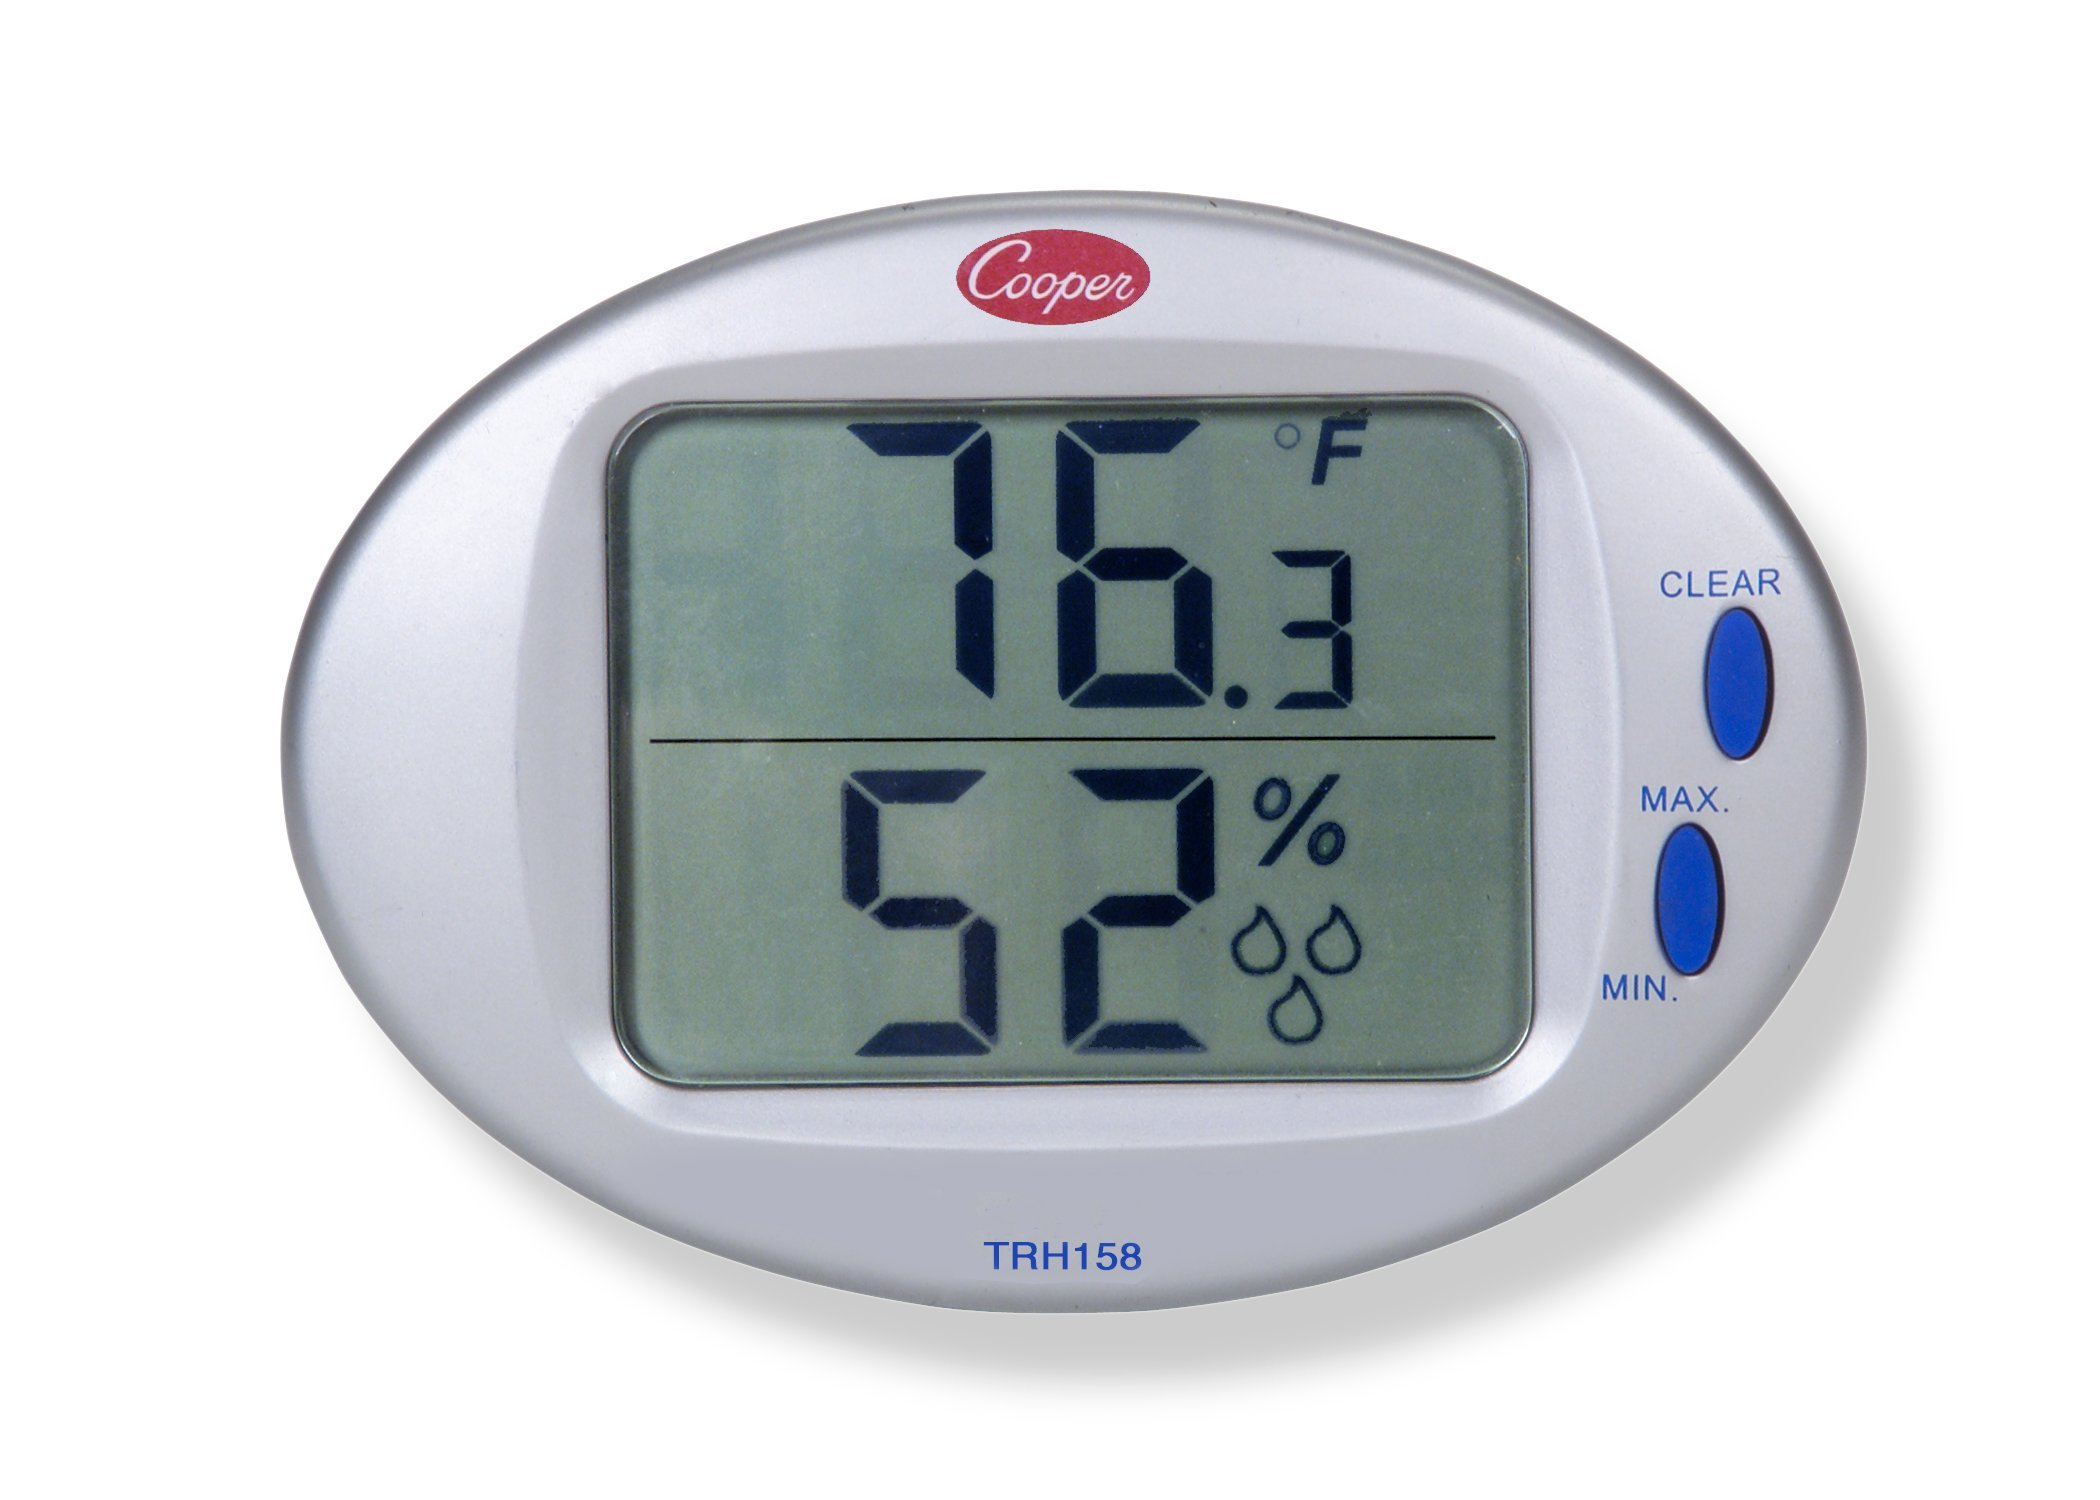 Cooper-Atkins TRH158-0-8 Digital Temperature/Humidity Wall Thermometer with Built-in Sensor, 32/122° F Temperature Range